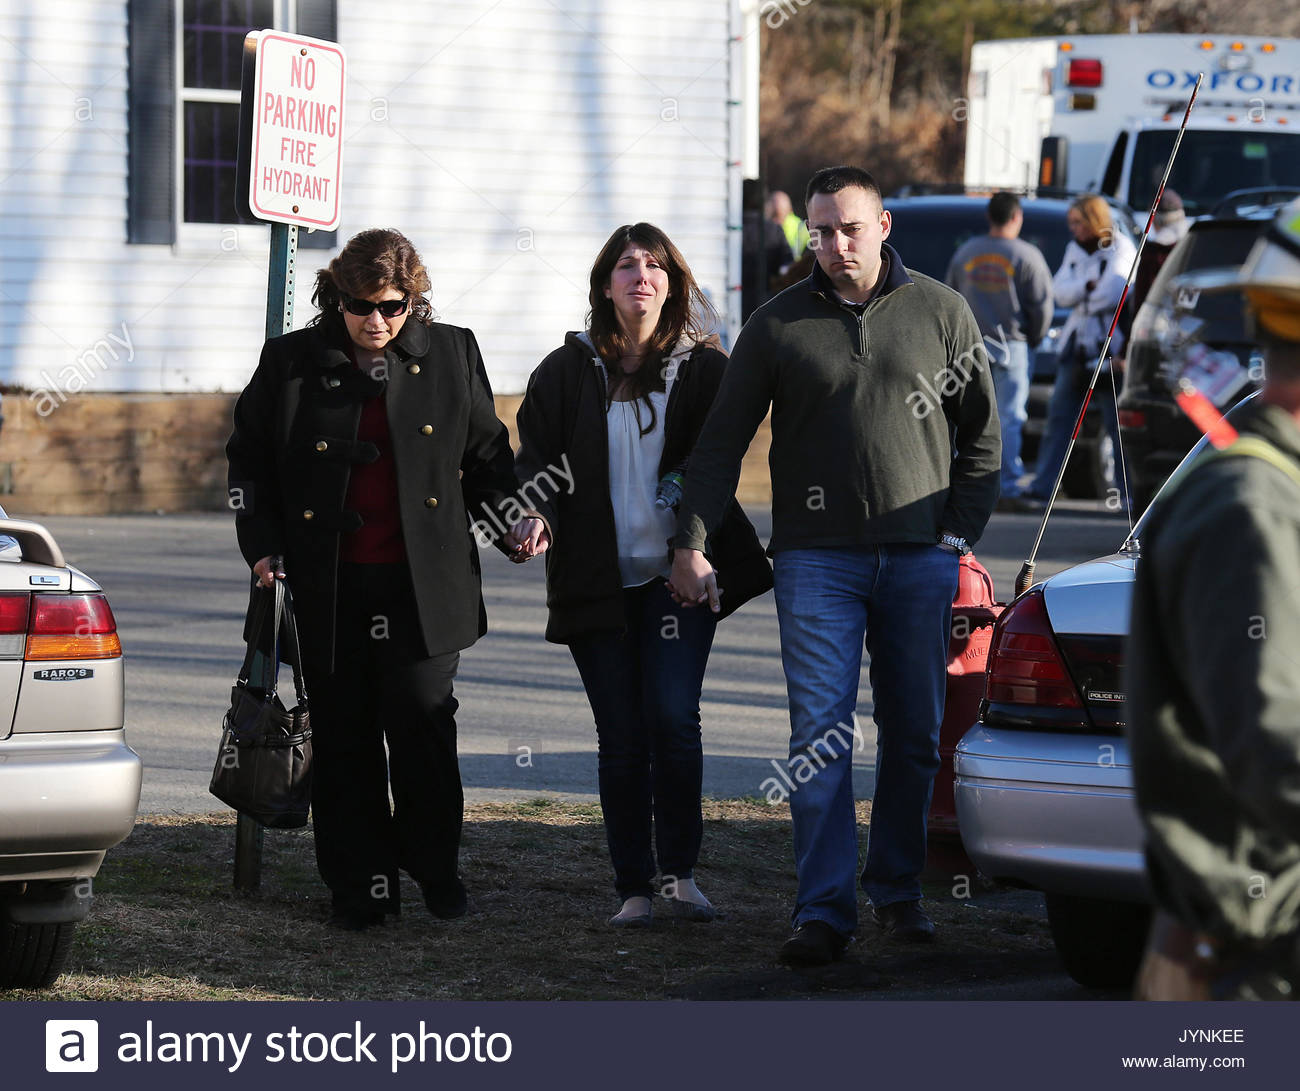 Scenes From Sandy Hook: Sandy Hook Elementary School Victims Stock Photos & Sandy